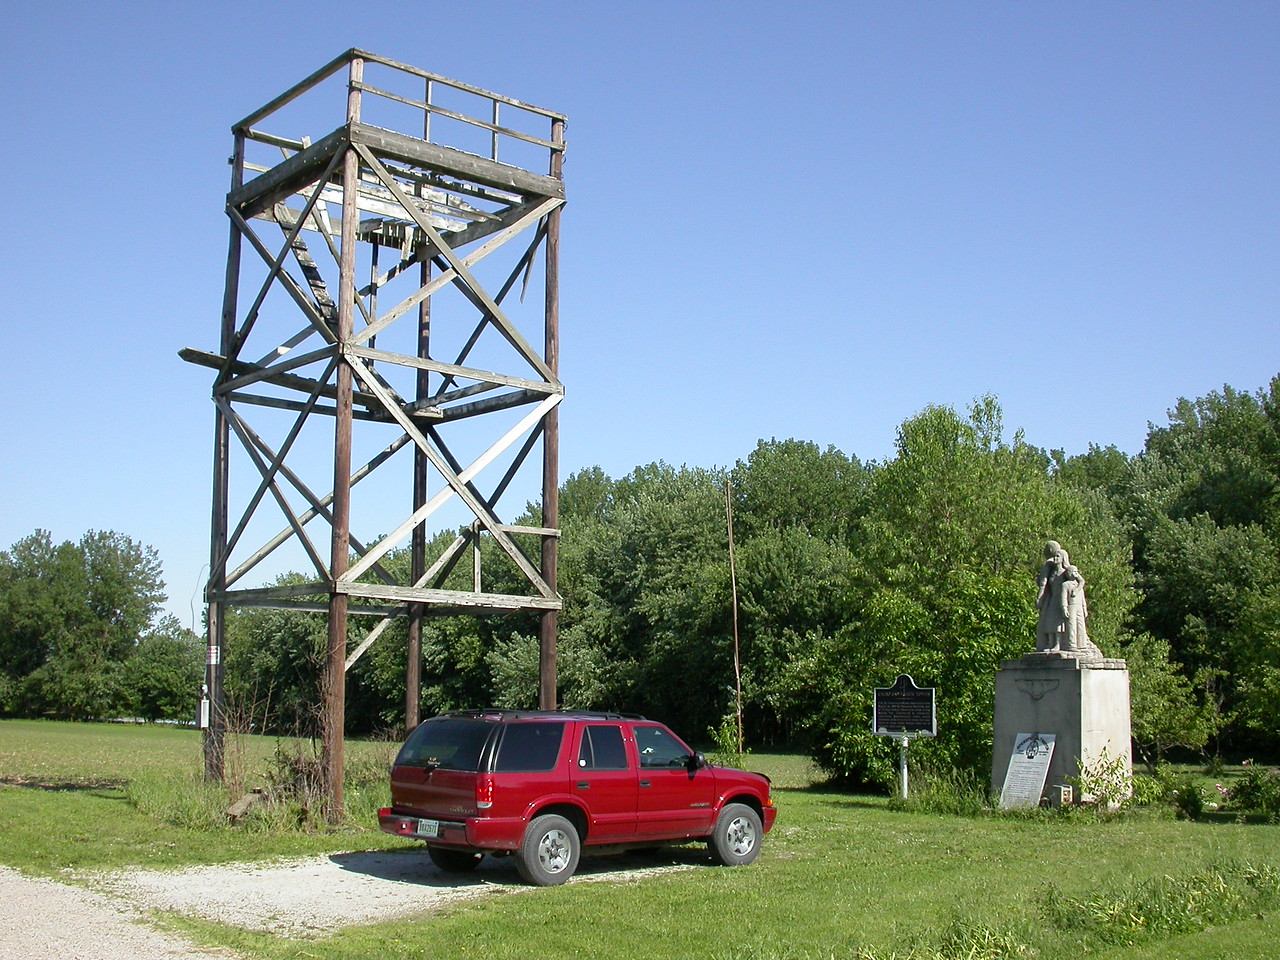 Cairo, Indiana Operation Skywatch Tower.  It was the site of some strange nationwide watch-for-Russian-in-bombers program in the 1950's.  Volunteers staffed the tower around the clock.  Photographed May 04.  Tower is in poor condition.